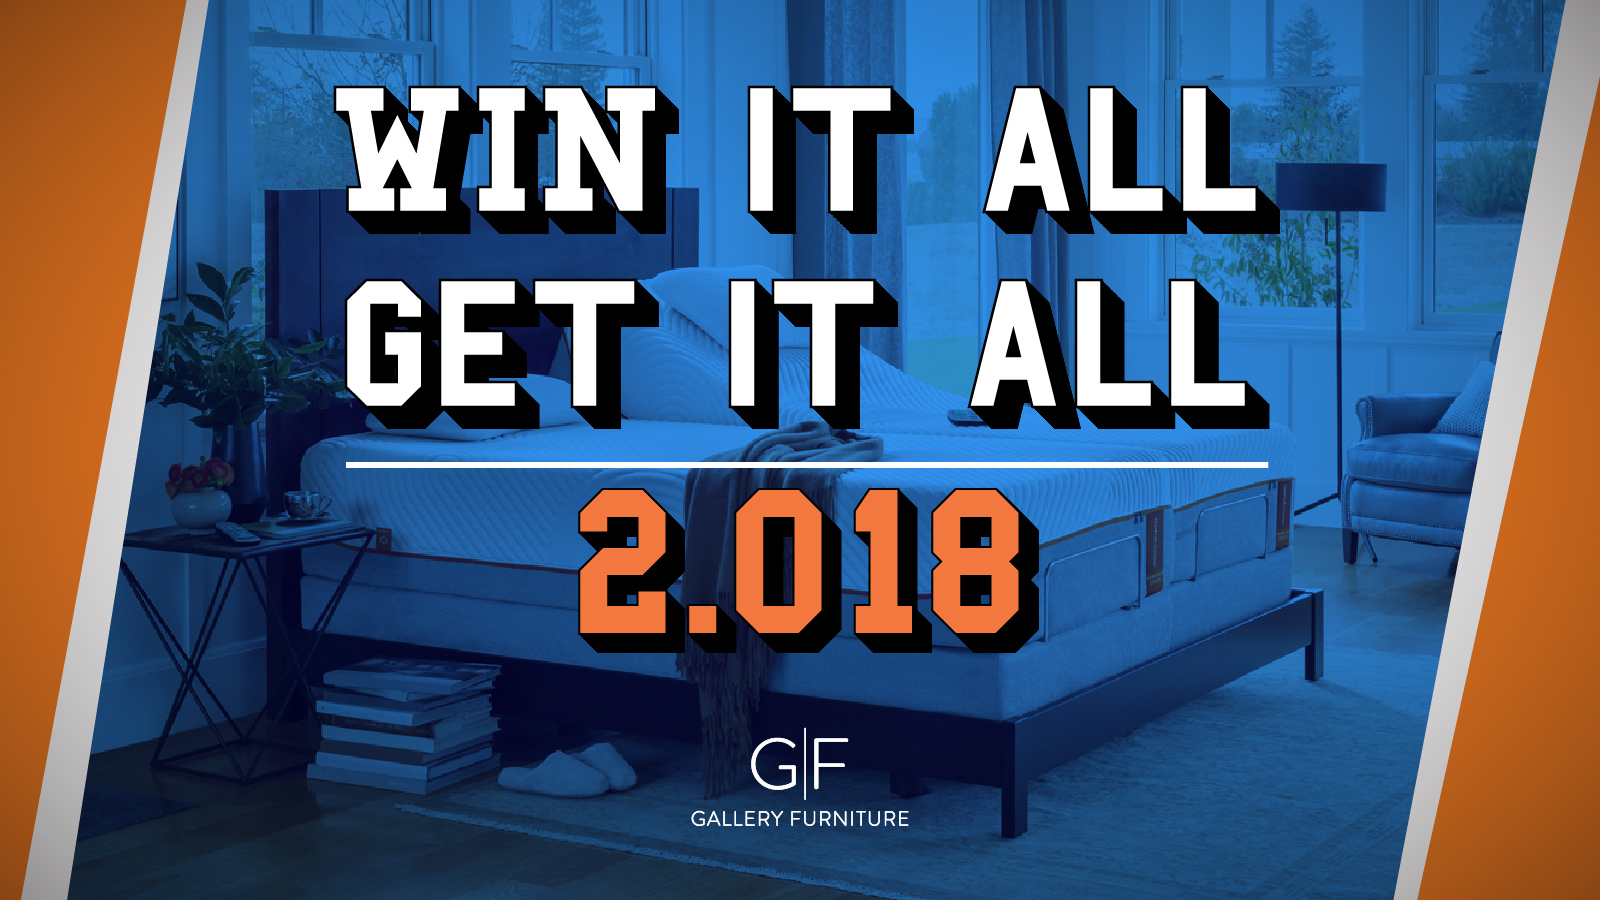 Astros Win It All 2 018 Gallery Furniture